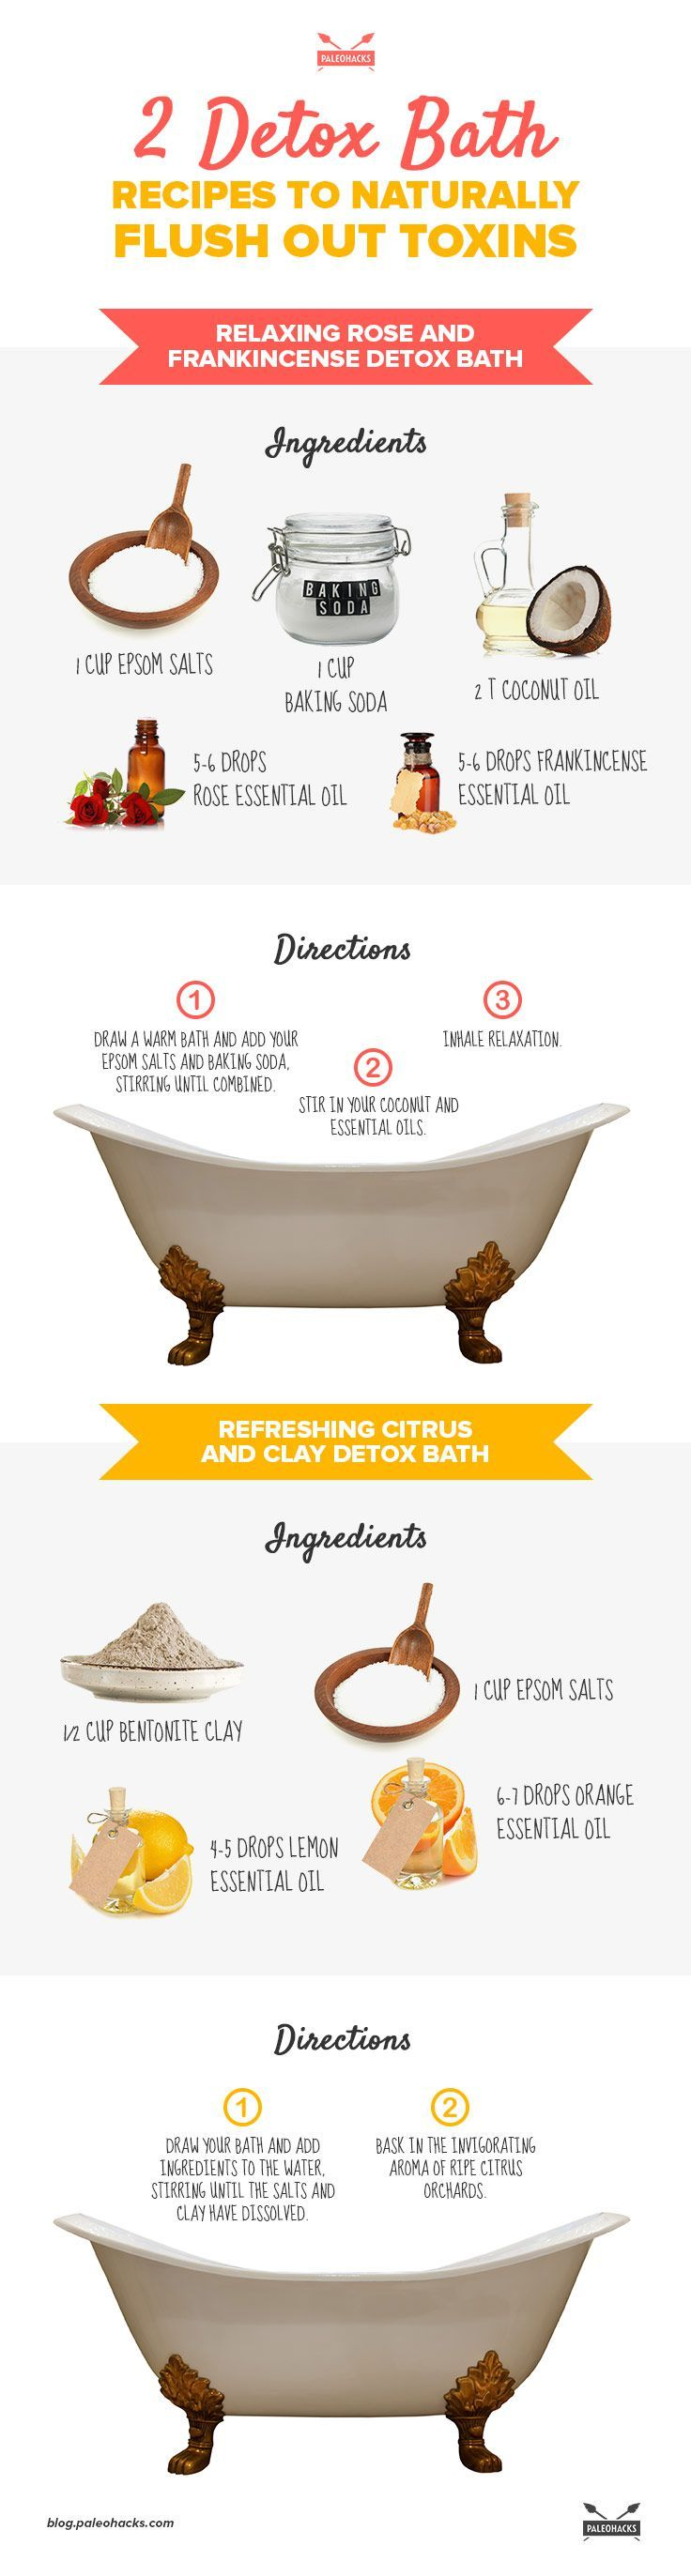 2 Detox Bath Recipes to Naturally Flush Out Toxins